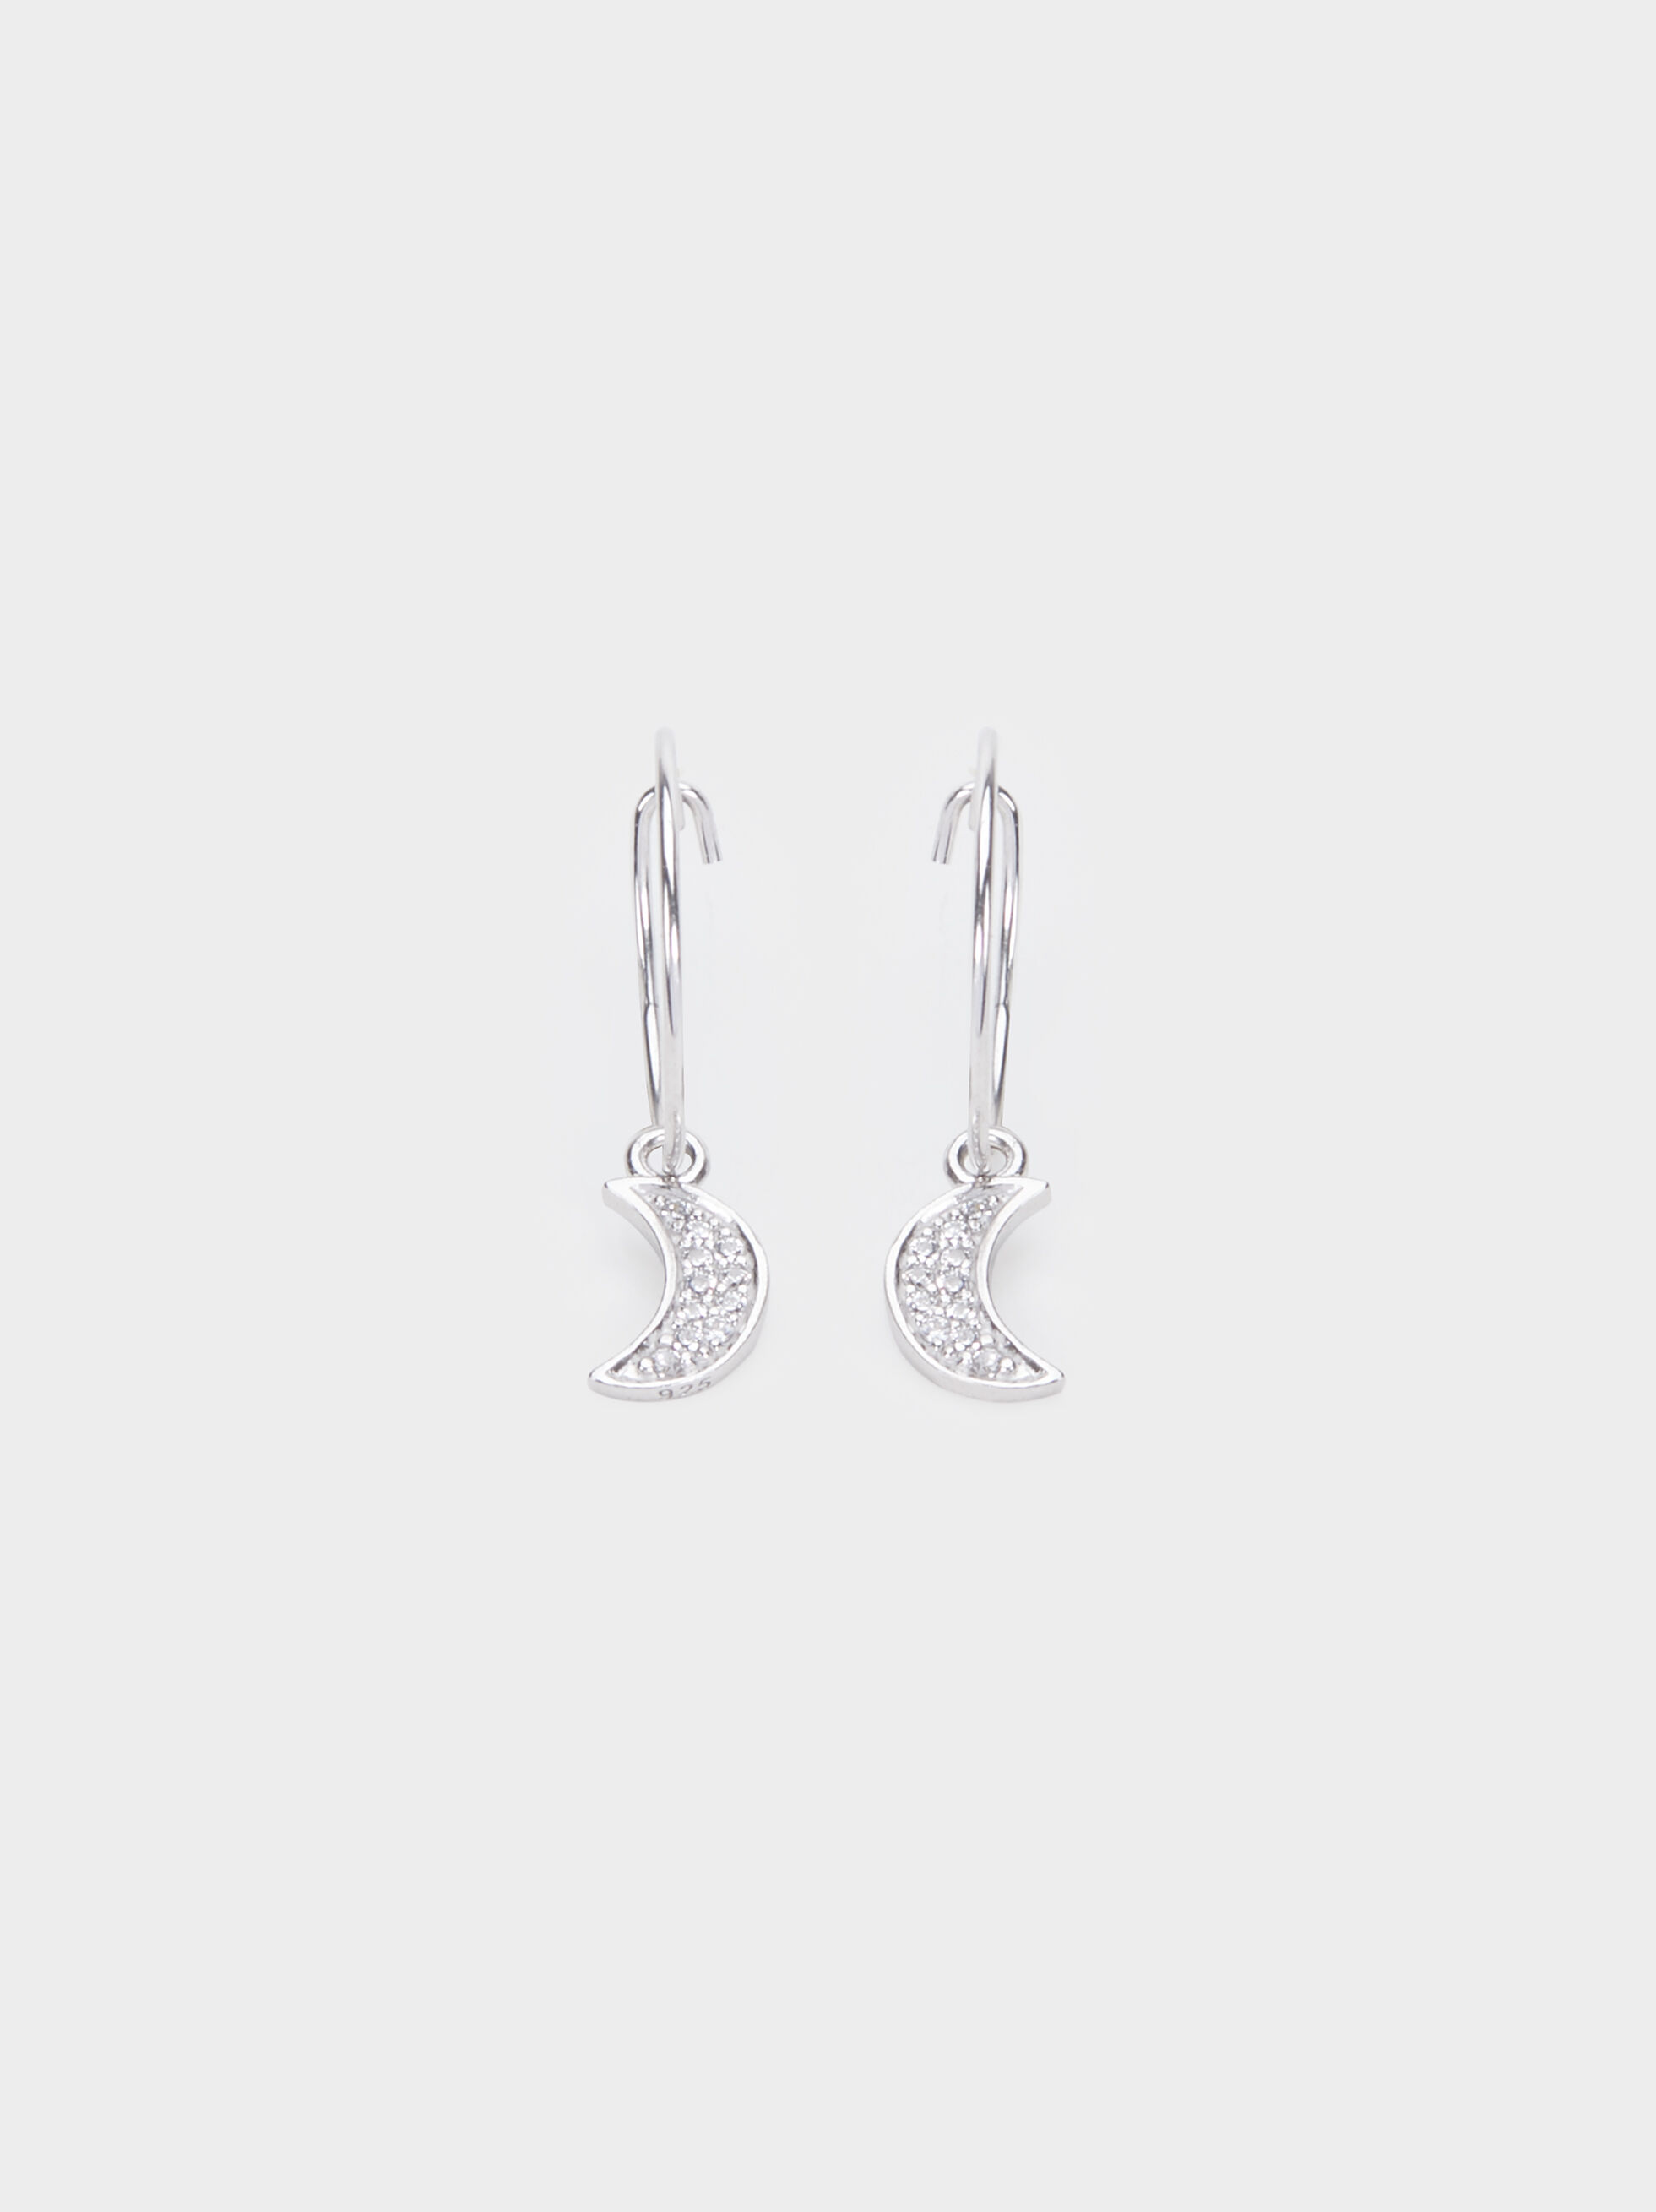 Small Silver 925 Moon Hoop Earrings, Silver, hi-res